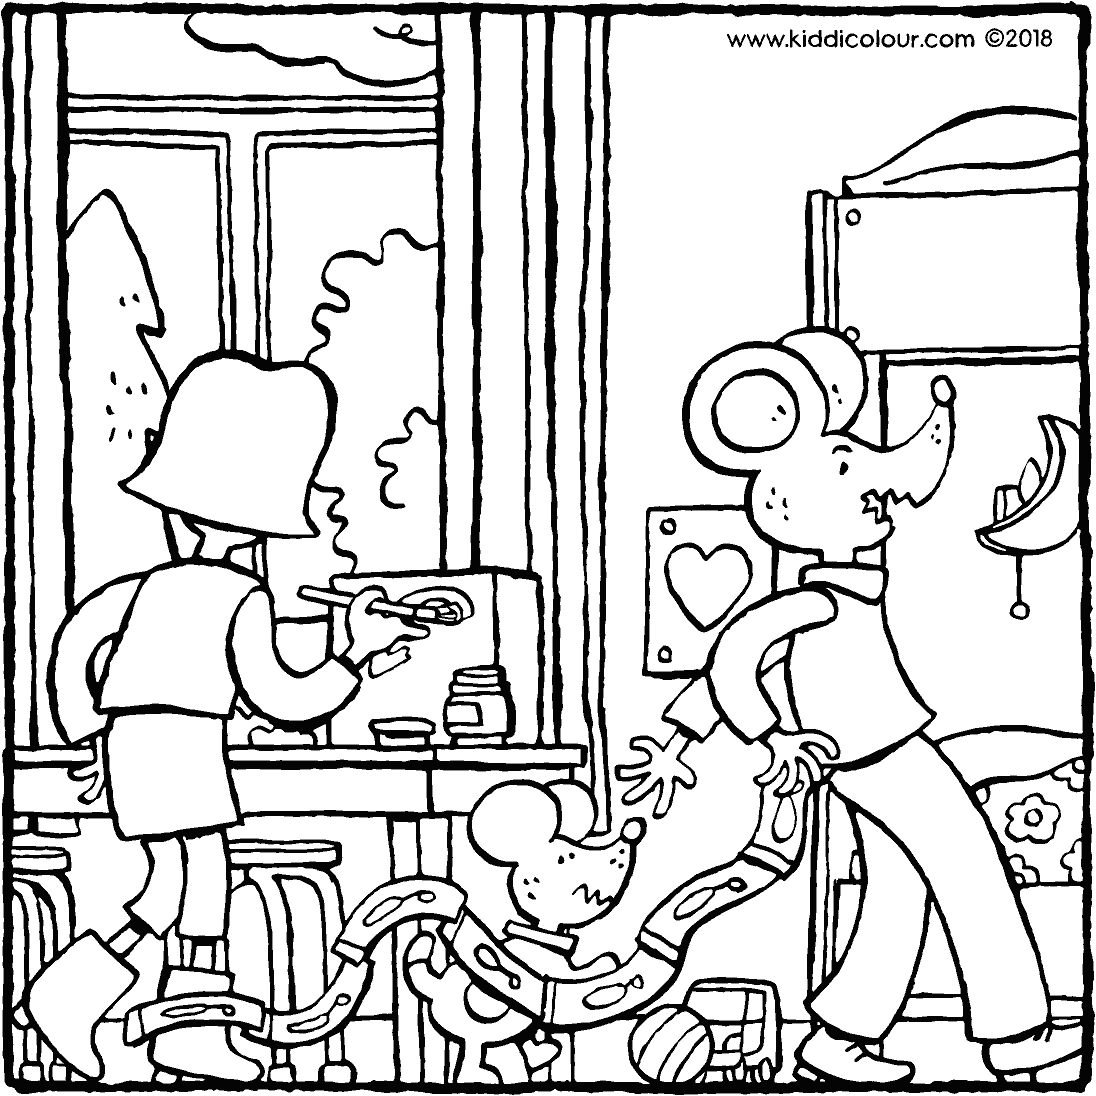 Emma and Thomas do crafts together colouring page drawing picture 01k